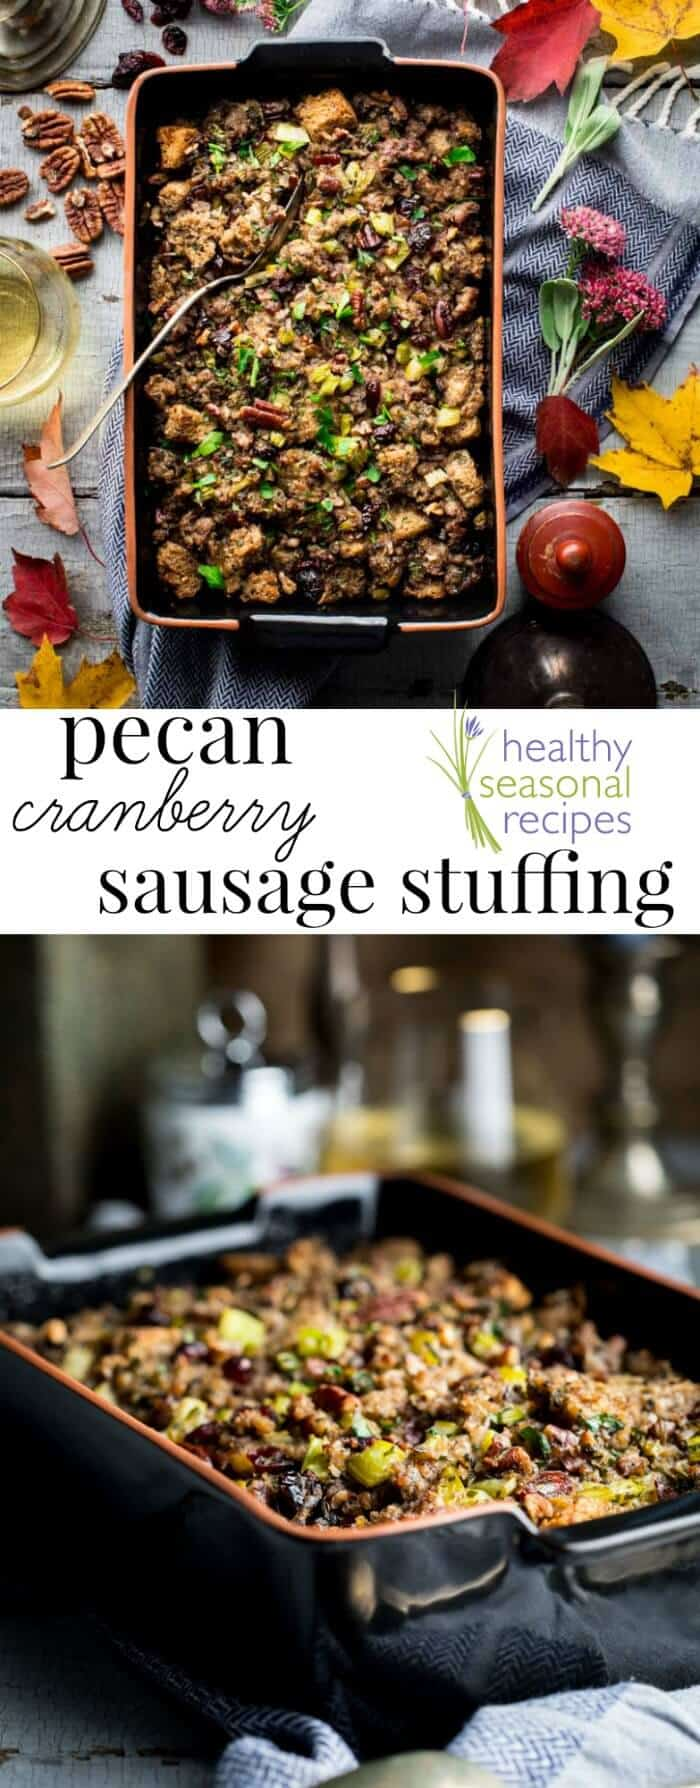 This Cranberry Sausage Stuffing recipe is a delicious and healthy make ahead classic side dish perfect for your Thanksgiving and Holiday table! | Healthy Seasonal Recipes | Katie Webster #Thanksgivingrecipe #sidedish #stuffingrecipe Thanksgiving #stuffing #dressing #sausage #pecans #cranberry #makeahead